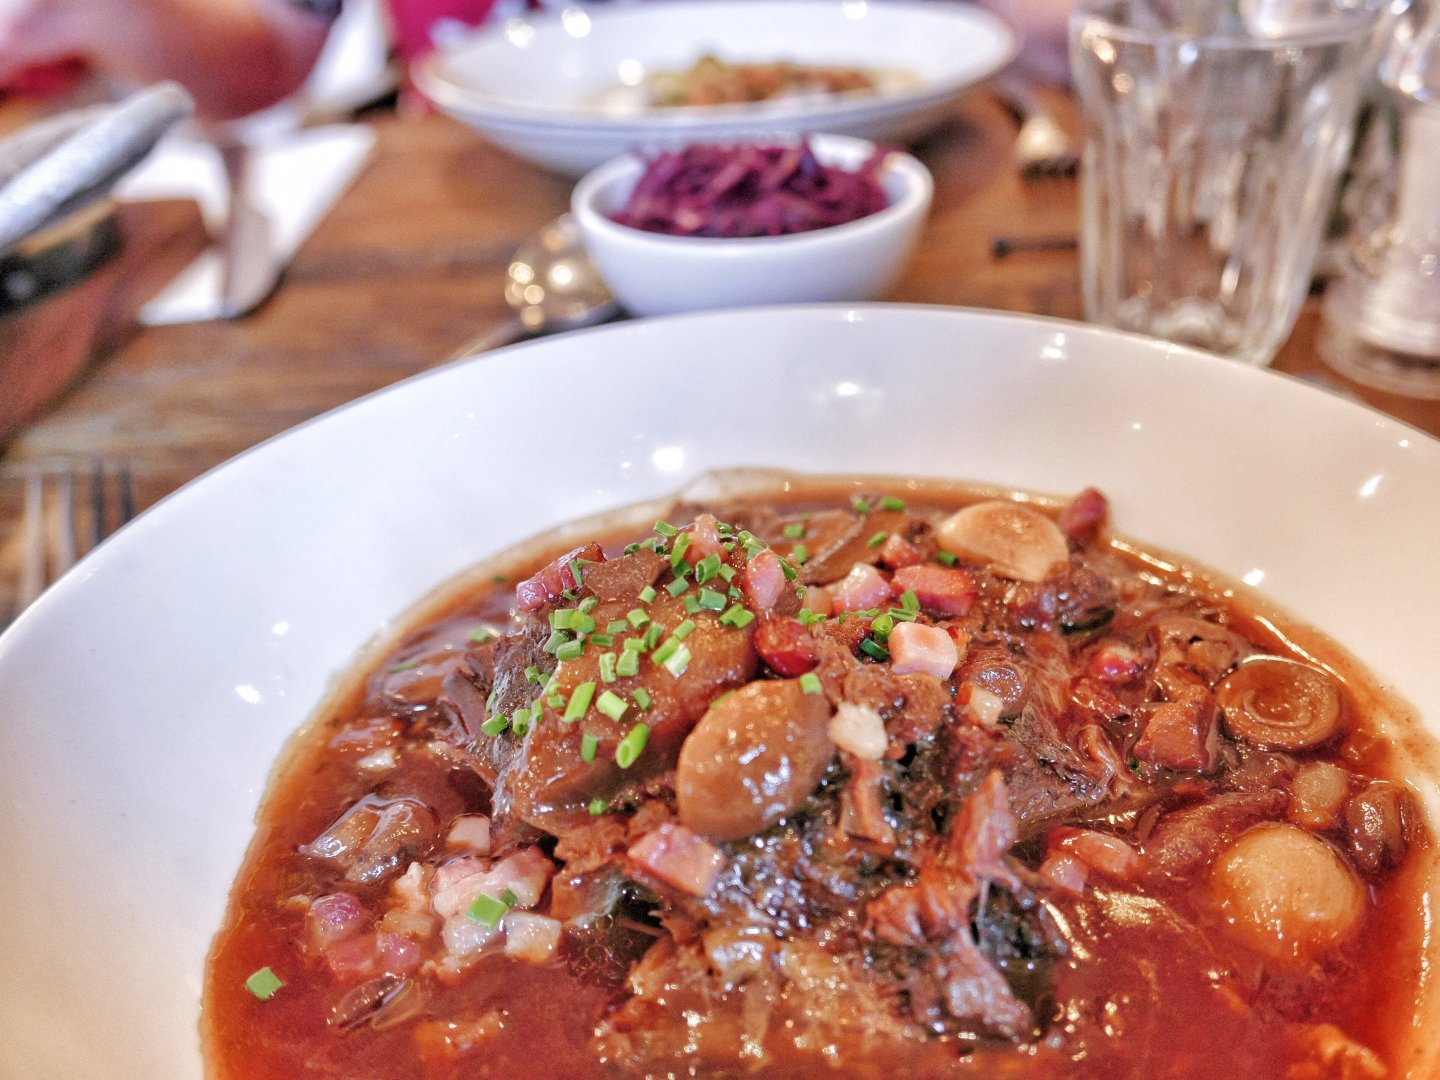 Main course at Bistrot Pierre: slow-cooked beef with shallots, red wine, bacon and mushrooms